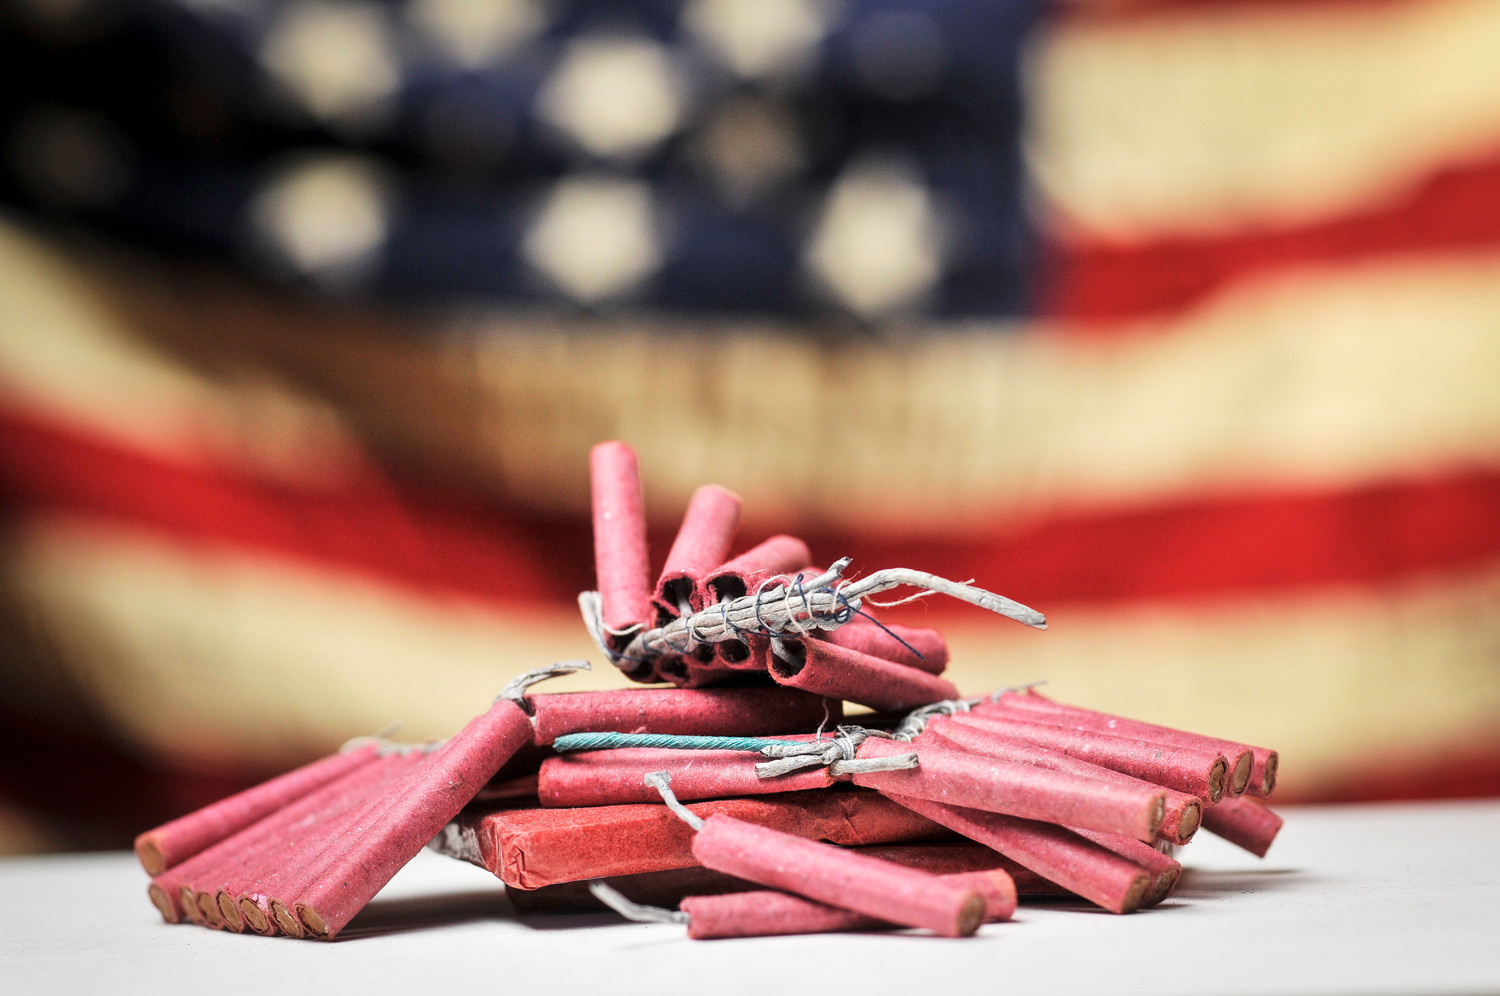 Using, or even possessing, fireworks in or near Cedar Park is illegal. Local officials recommend attending a professional fireworks display instead of risking fines or possible jail time.